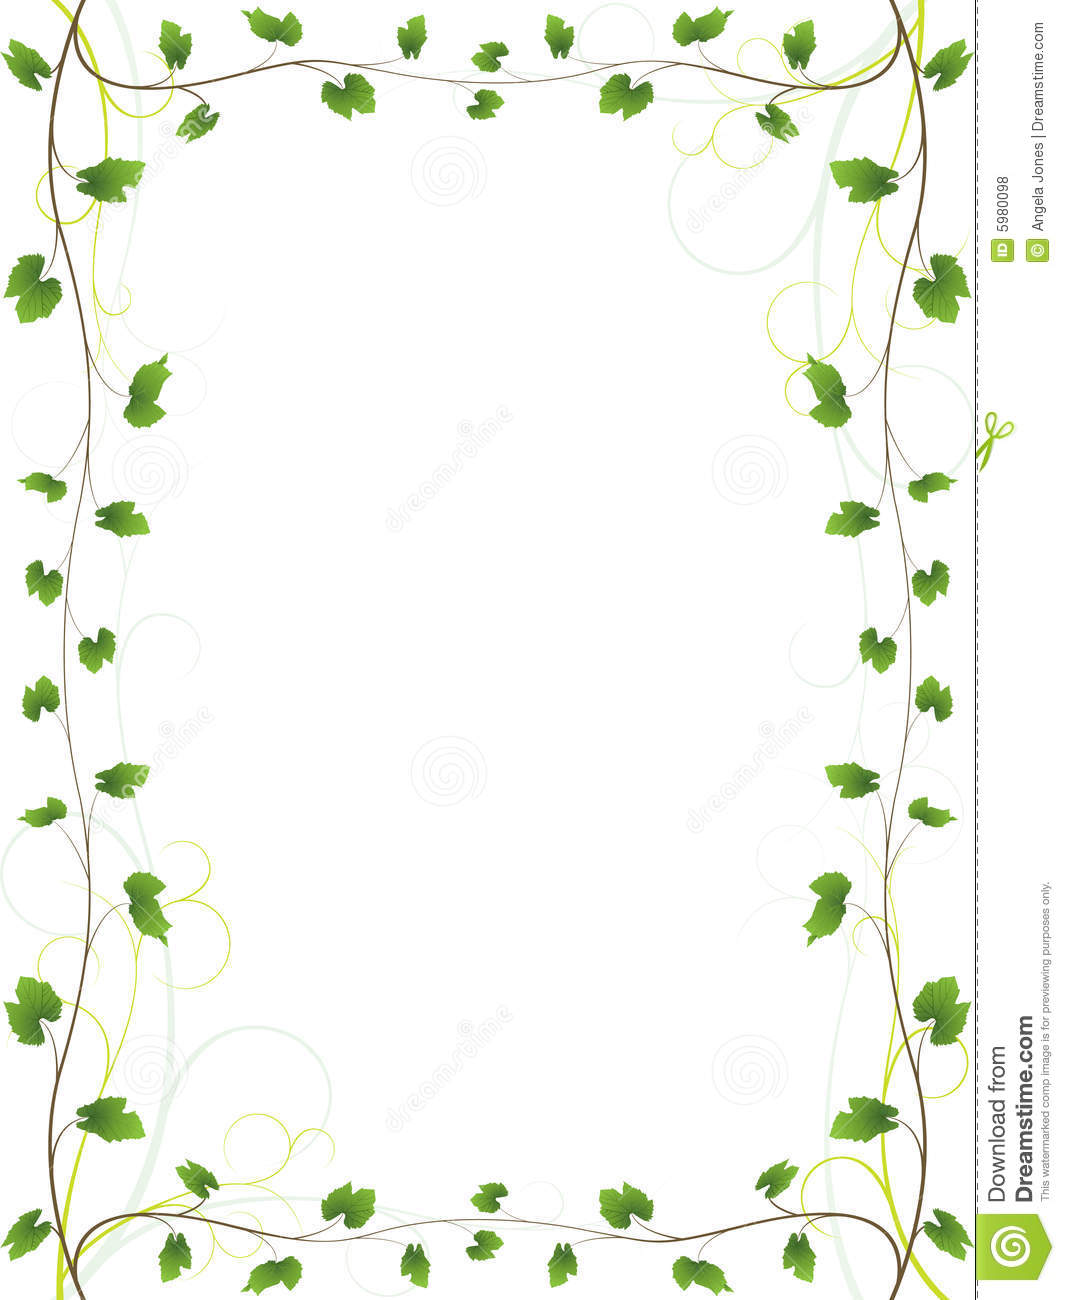 Elegant Vine Border Royalty Free Stock Photos Image 5980098